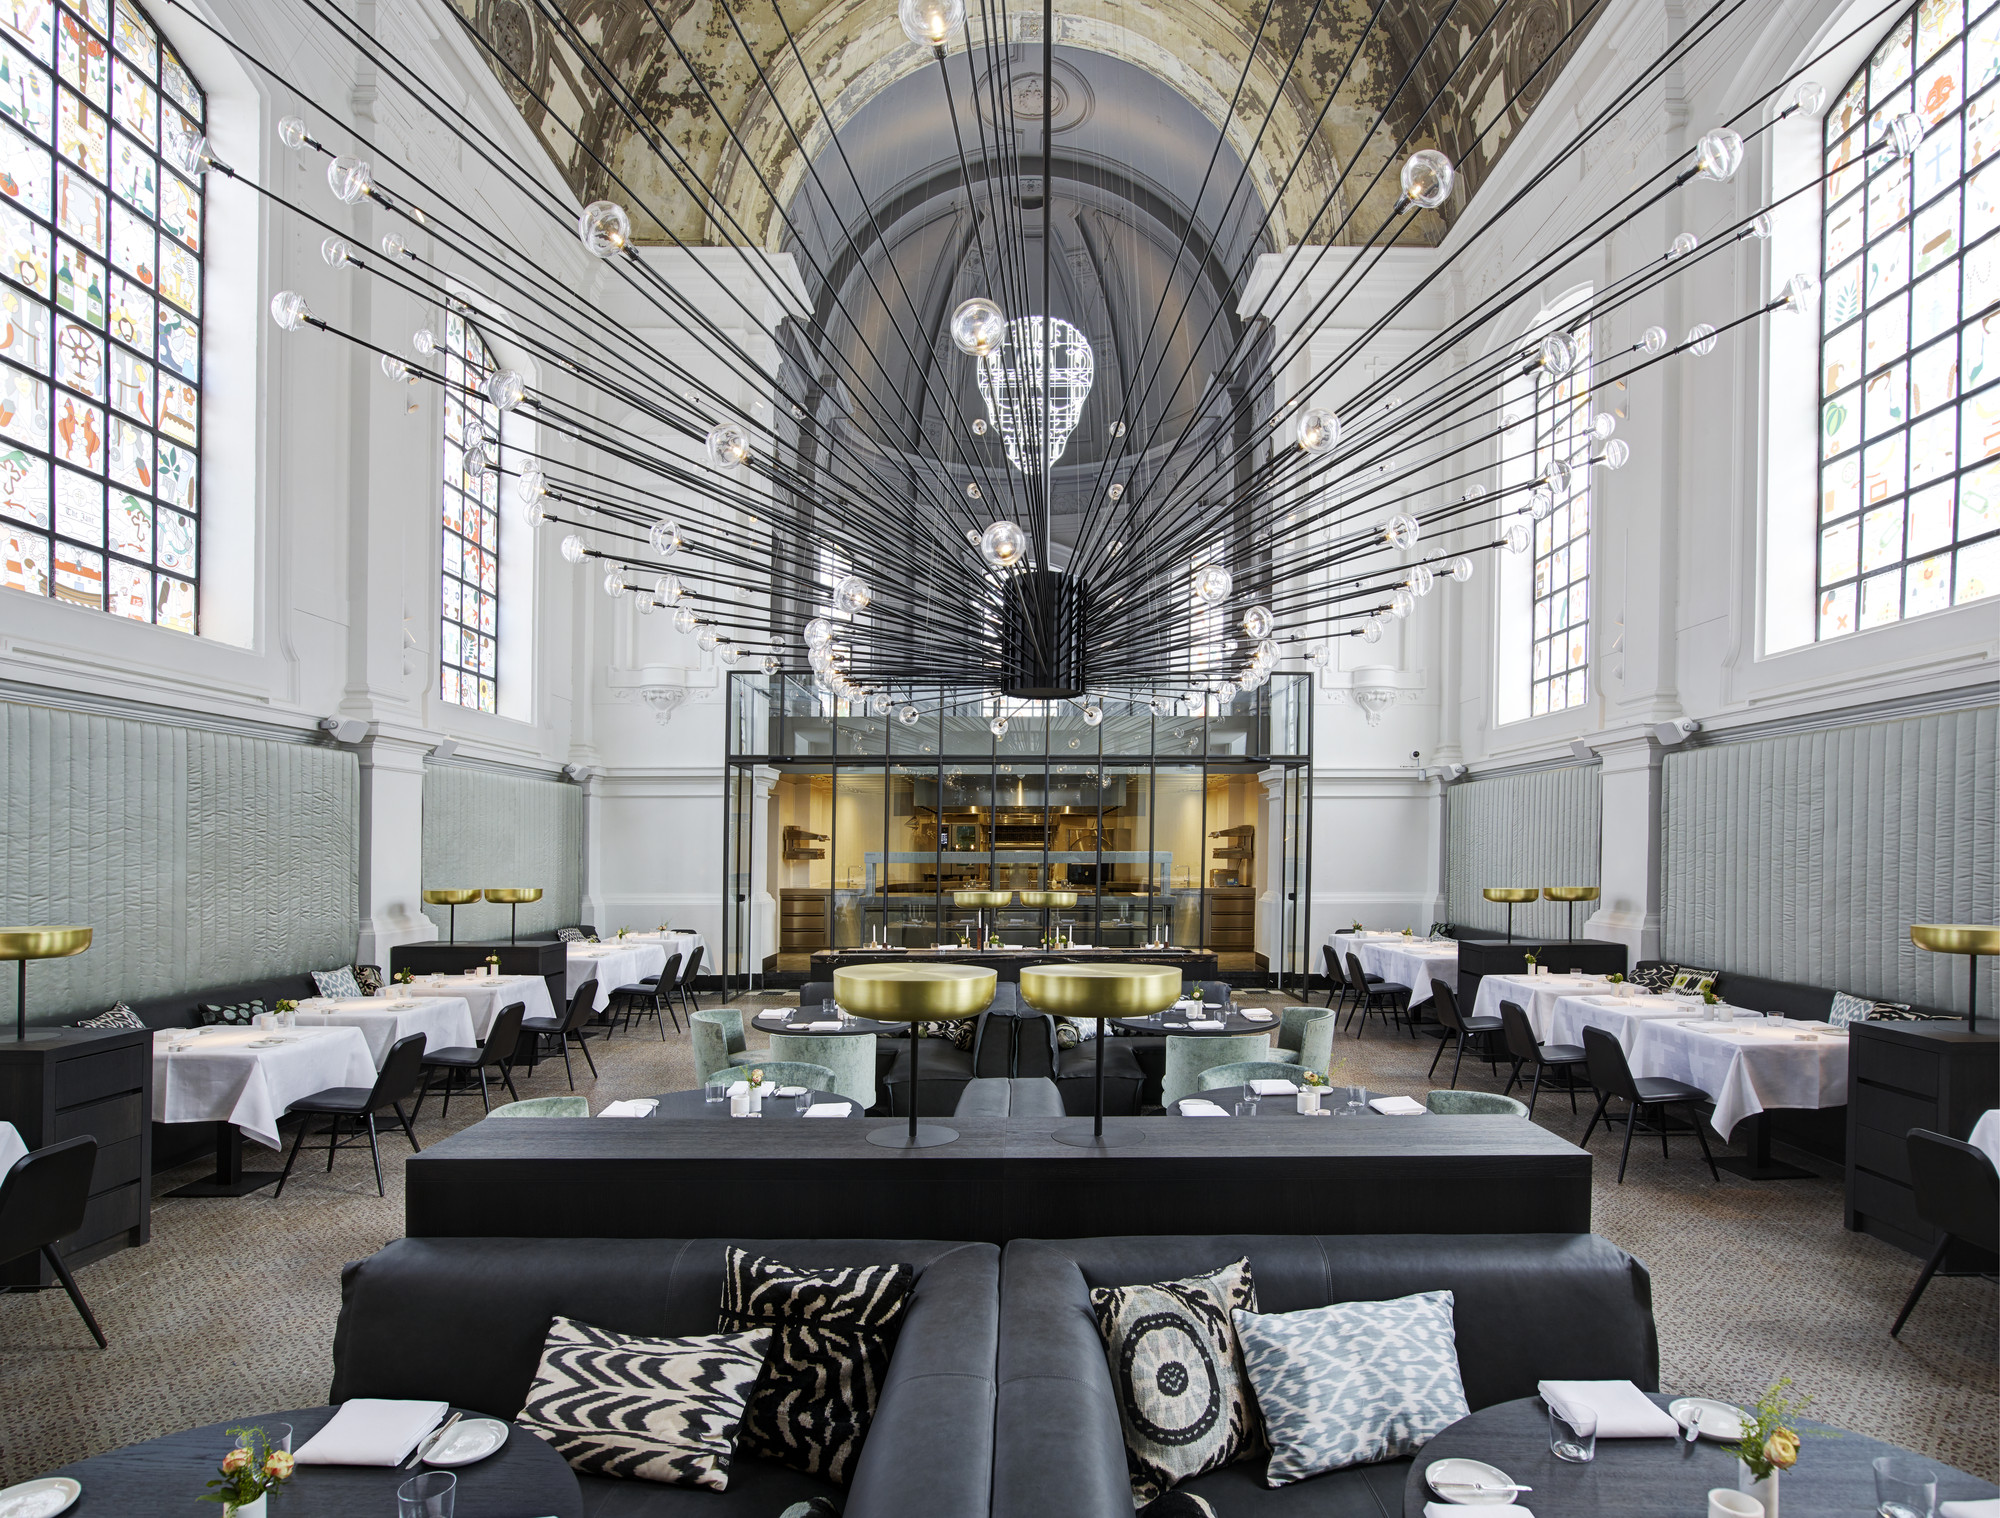 Restaurant 'The Jane' Antwerp / Piet Boon, © Richard Powers